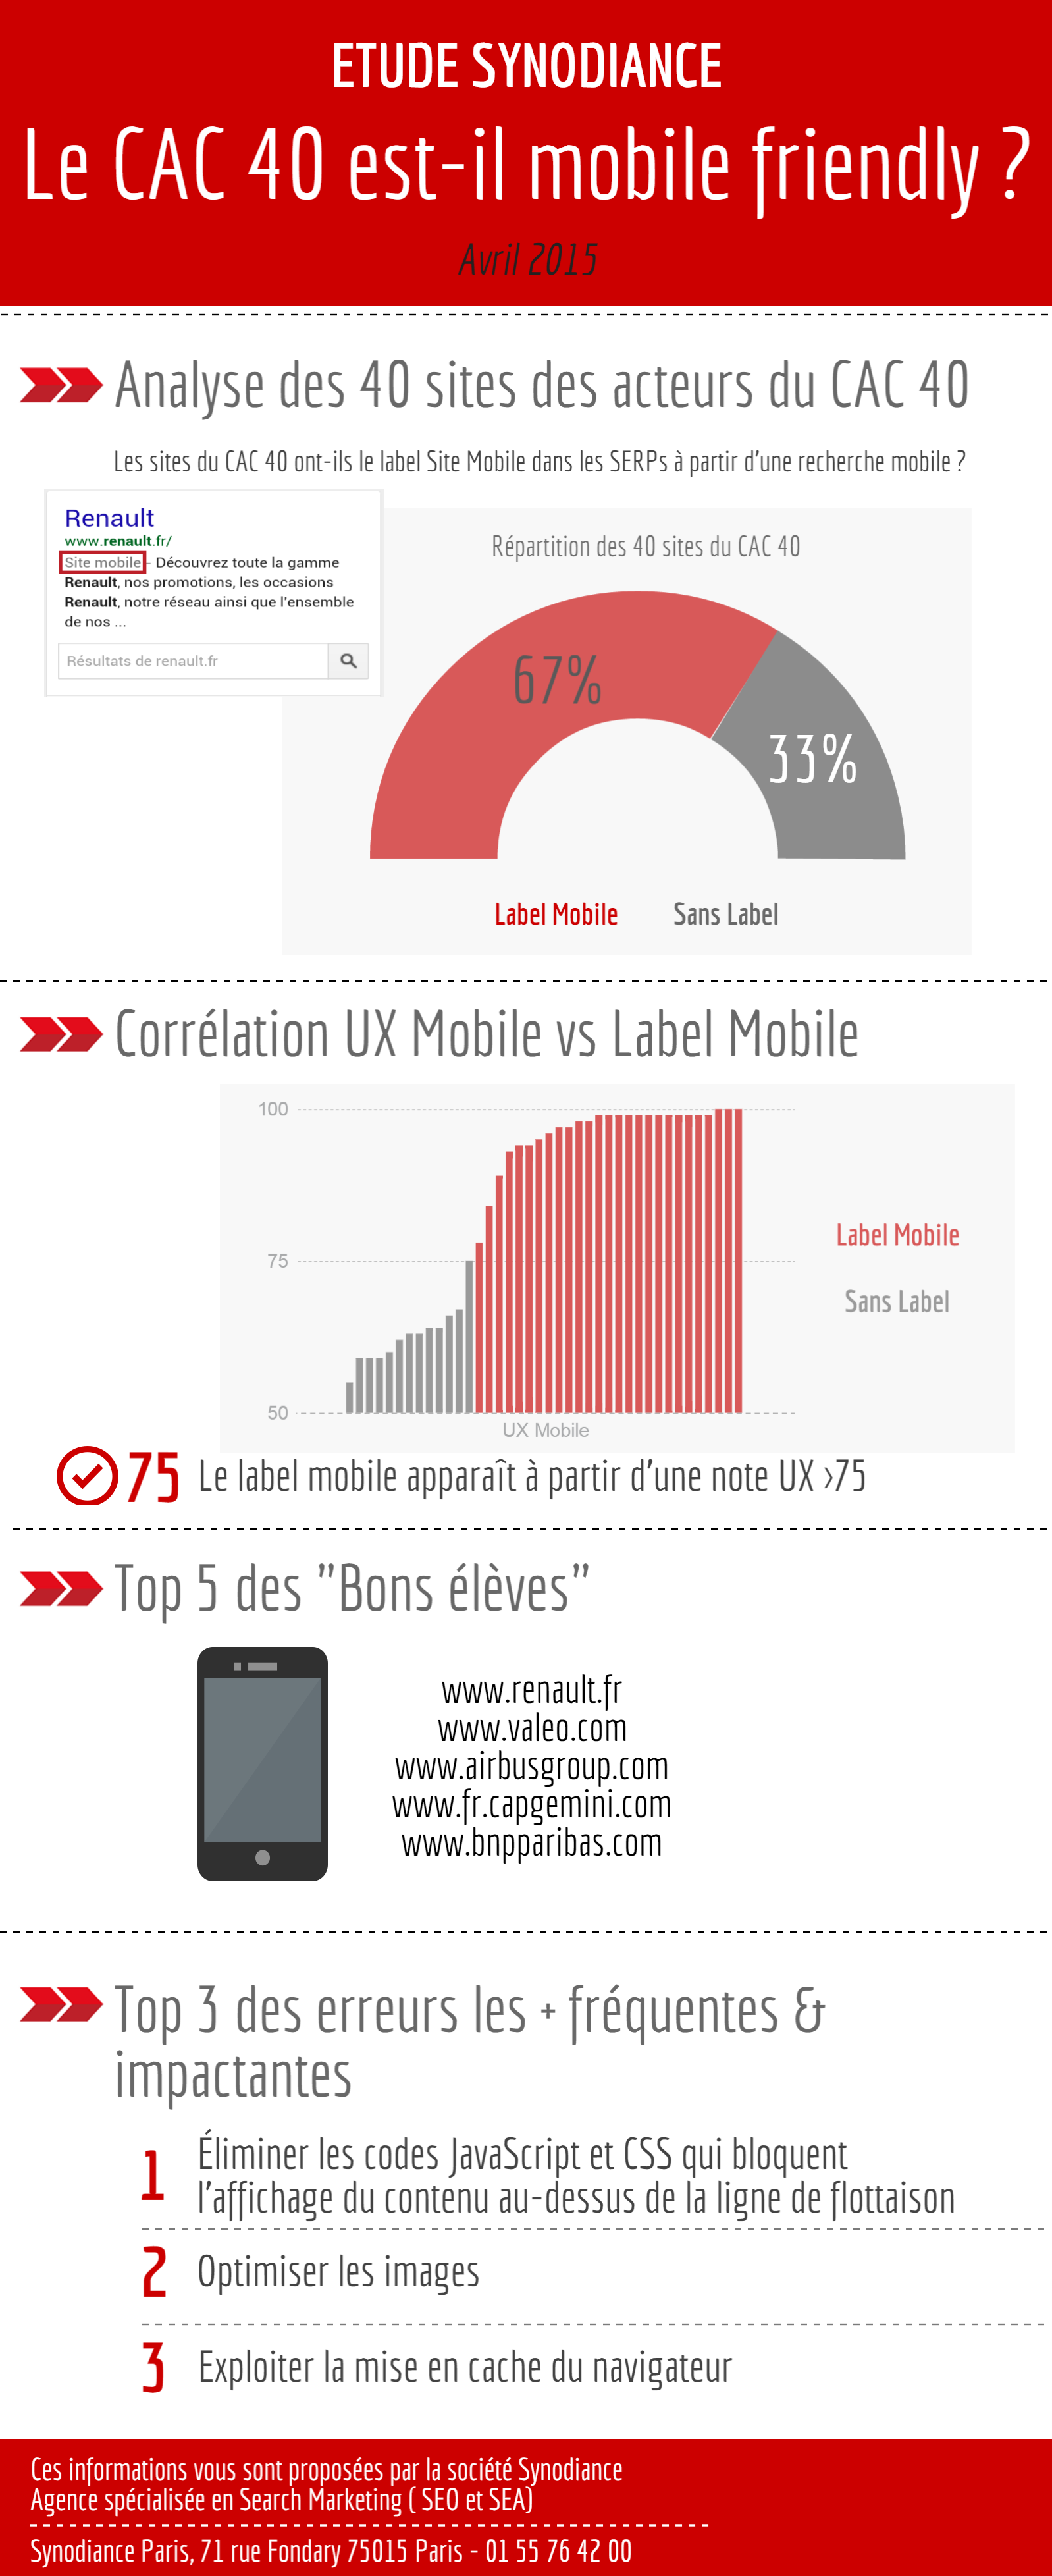 infographie-CAC-40-mobile-friendly